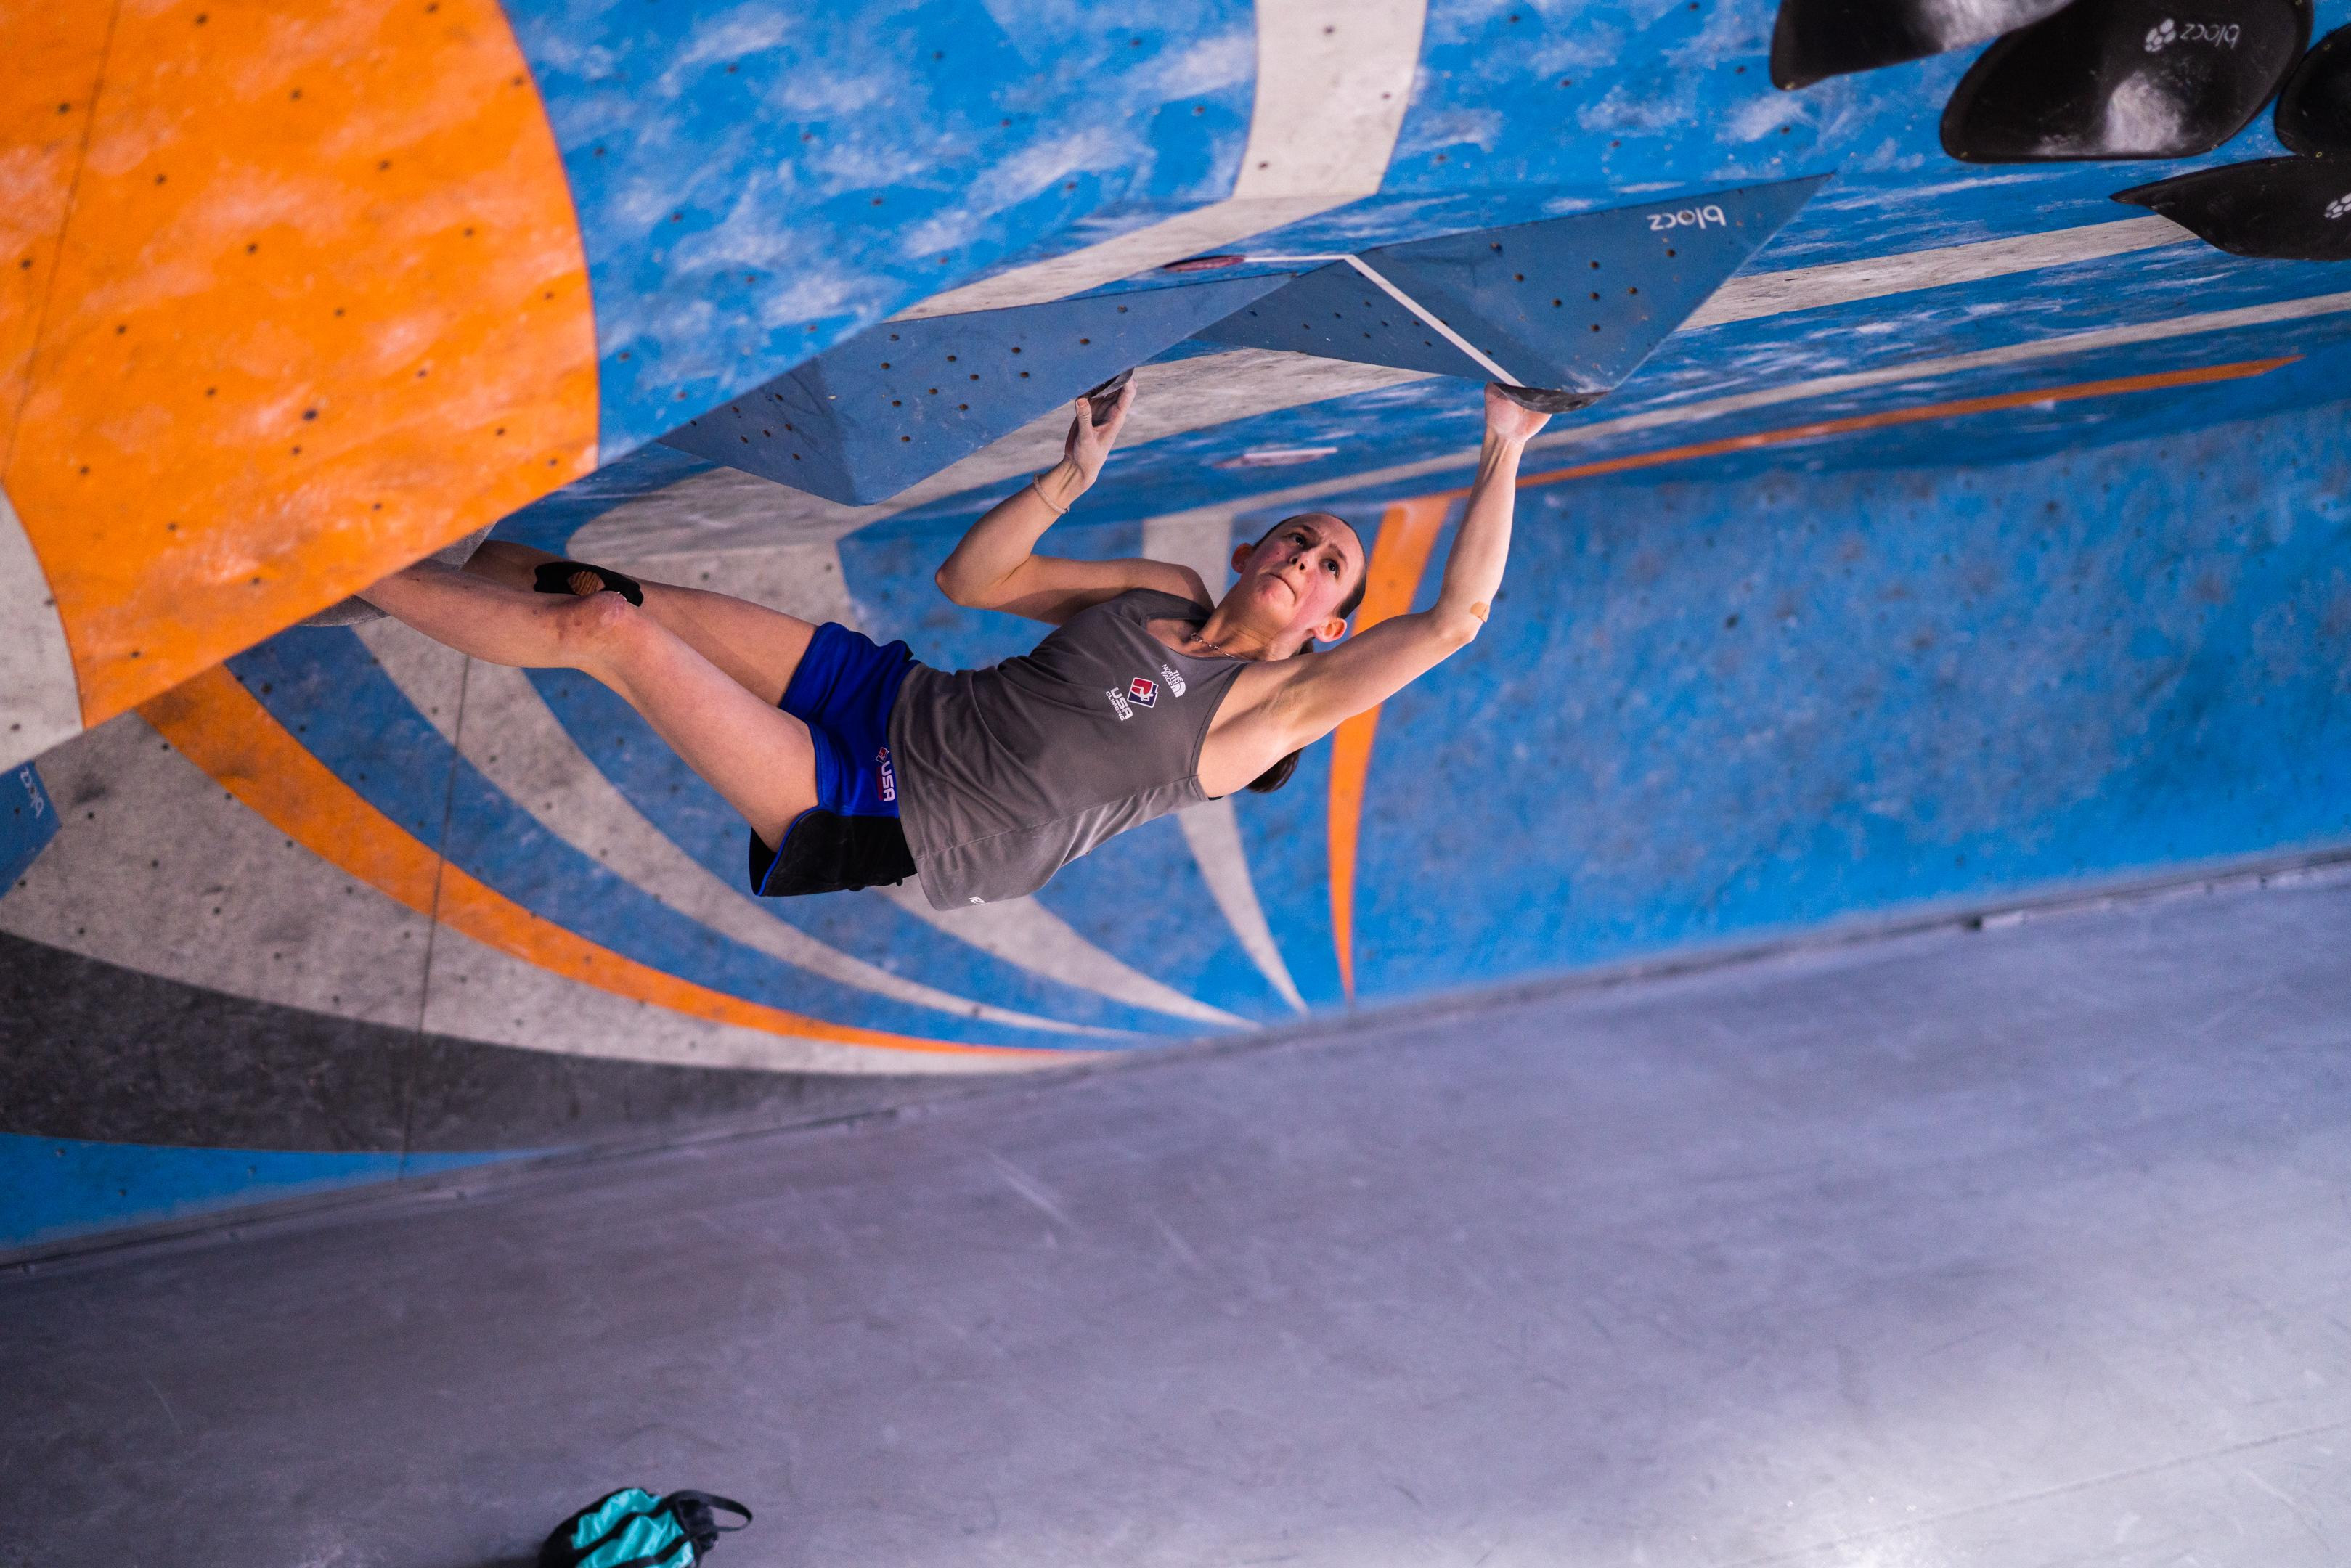 210326 IFSC News Both IFSC World Cup stages in Salt Lake City confirmed